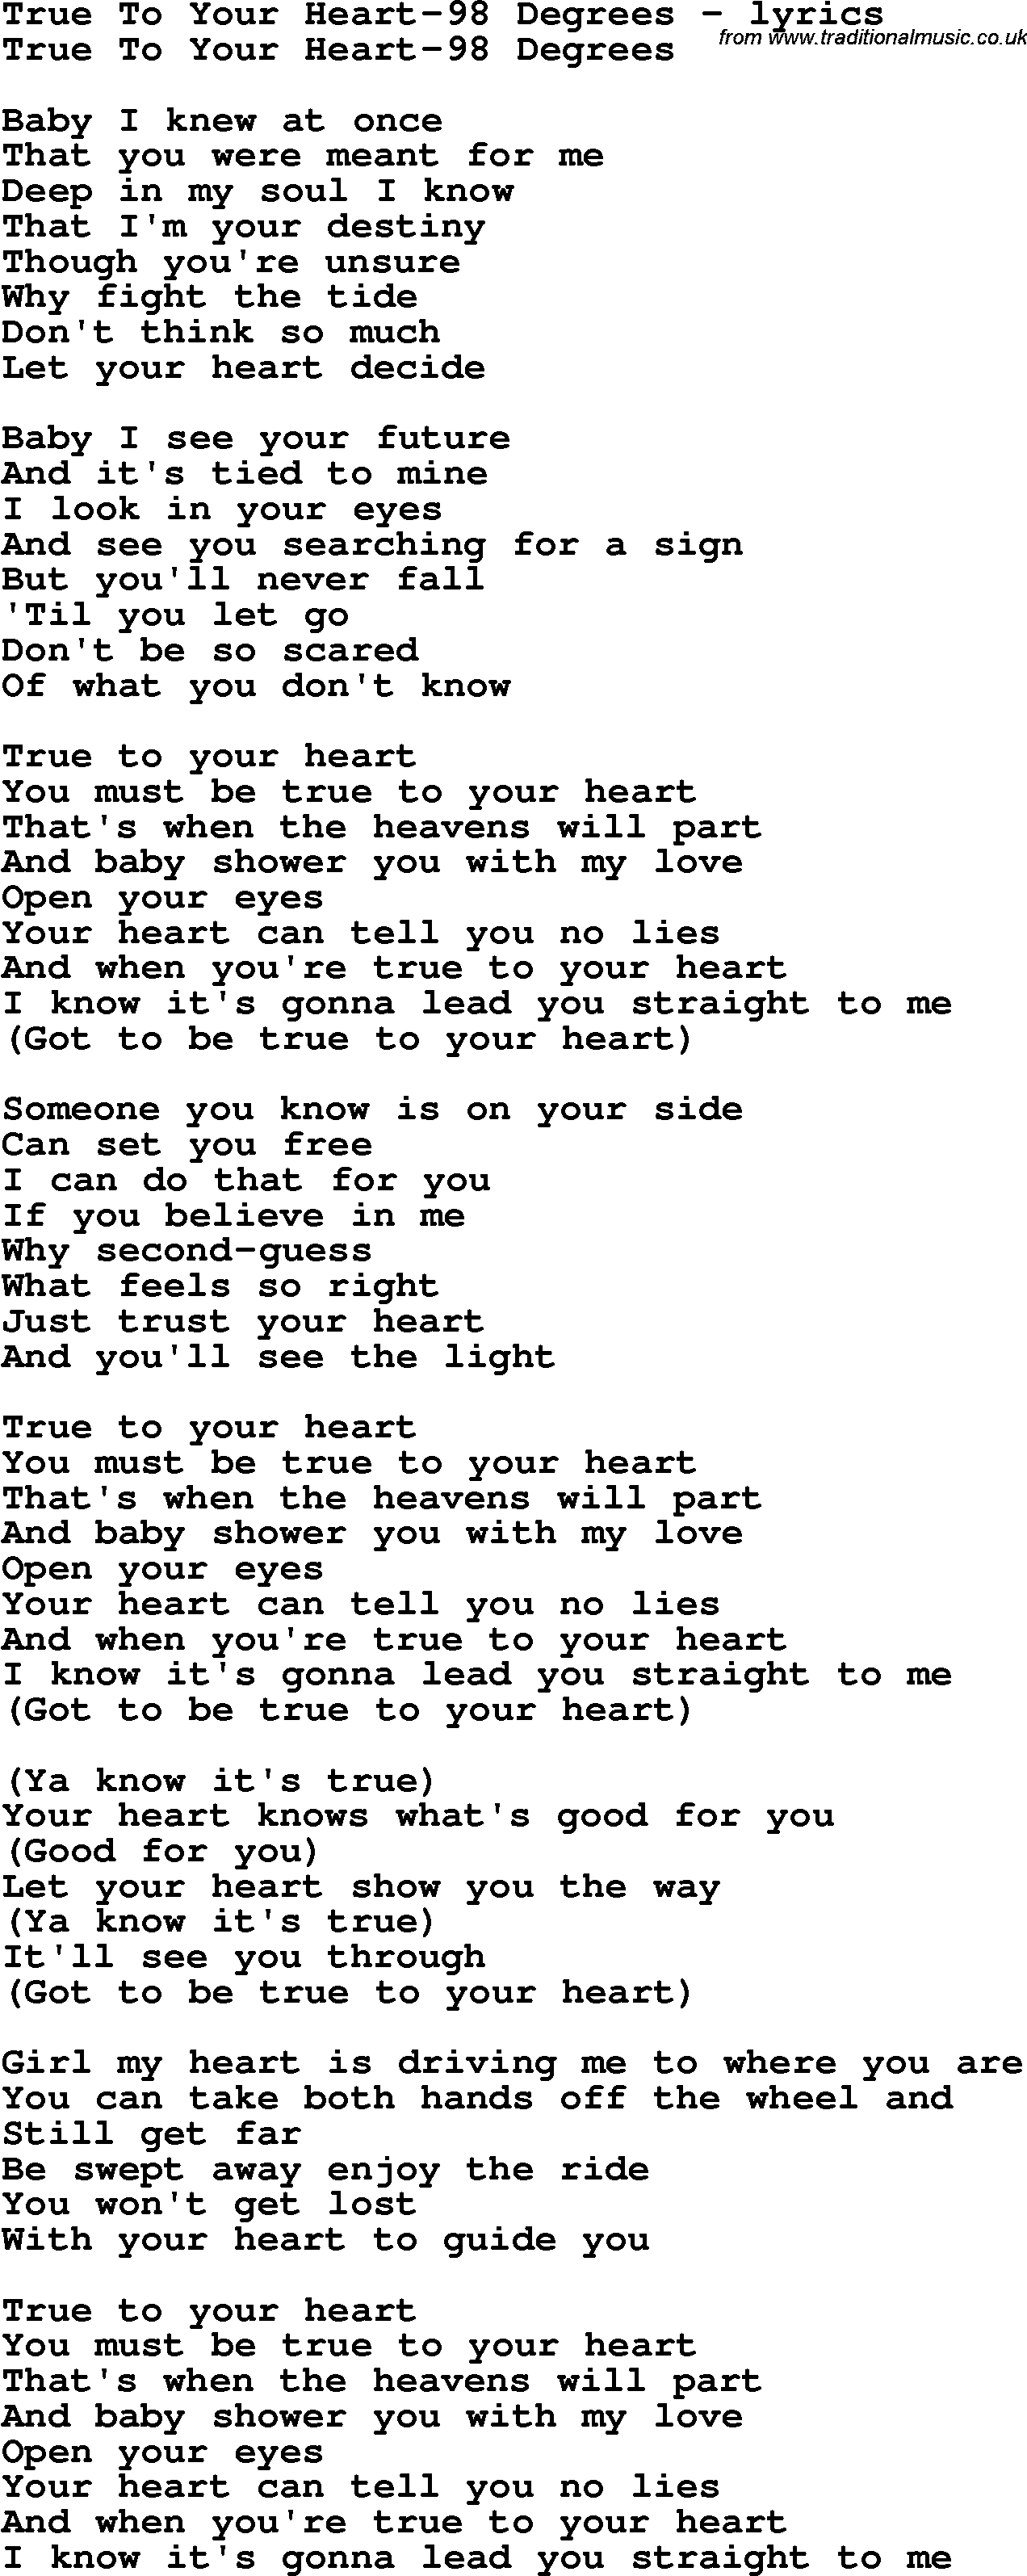 Love Song Lyrics For True To Your Heart 98 Degrees